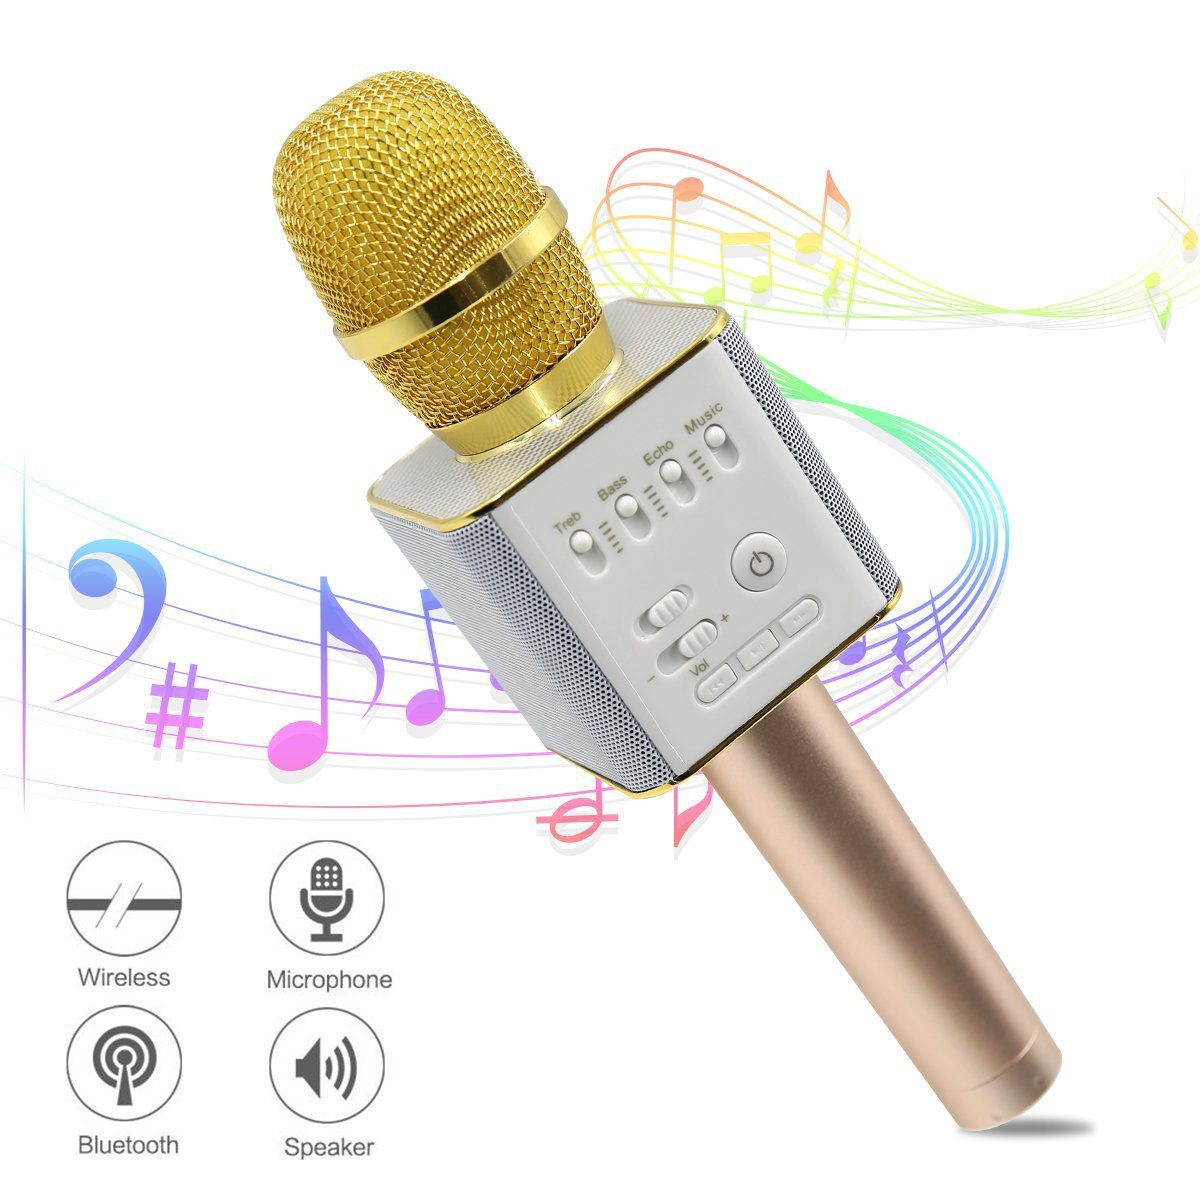 Ula Wireless Karaoke Microphones, Bluetooth Karaoke Machine, Upgraded 2600mAh Stereo Player Outdoor Family KTV Party Handheld Singing Q9, Compatible With Smartphone Devices (Great Gift For Kids)